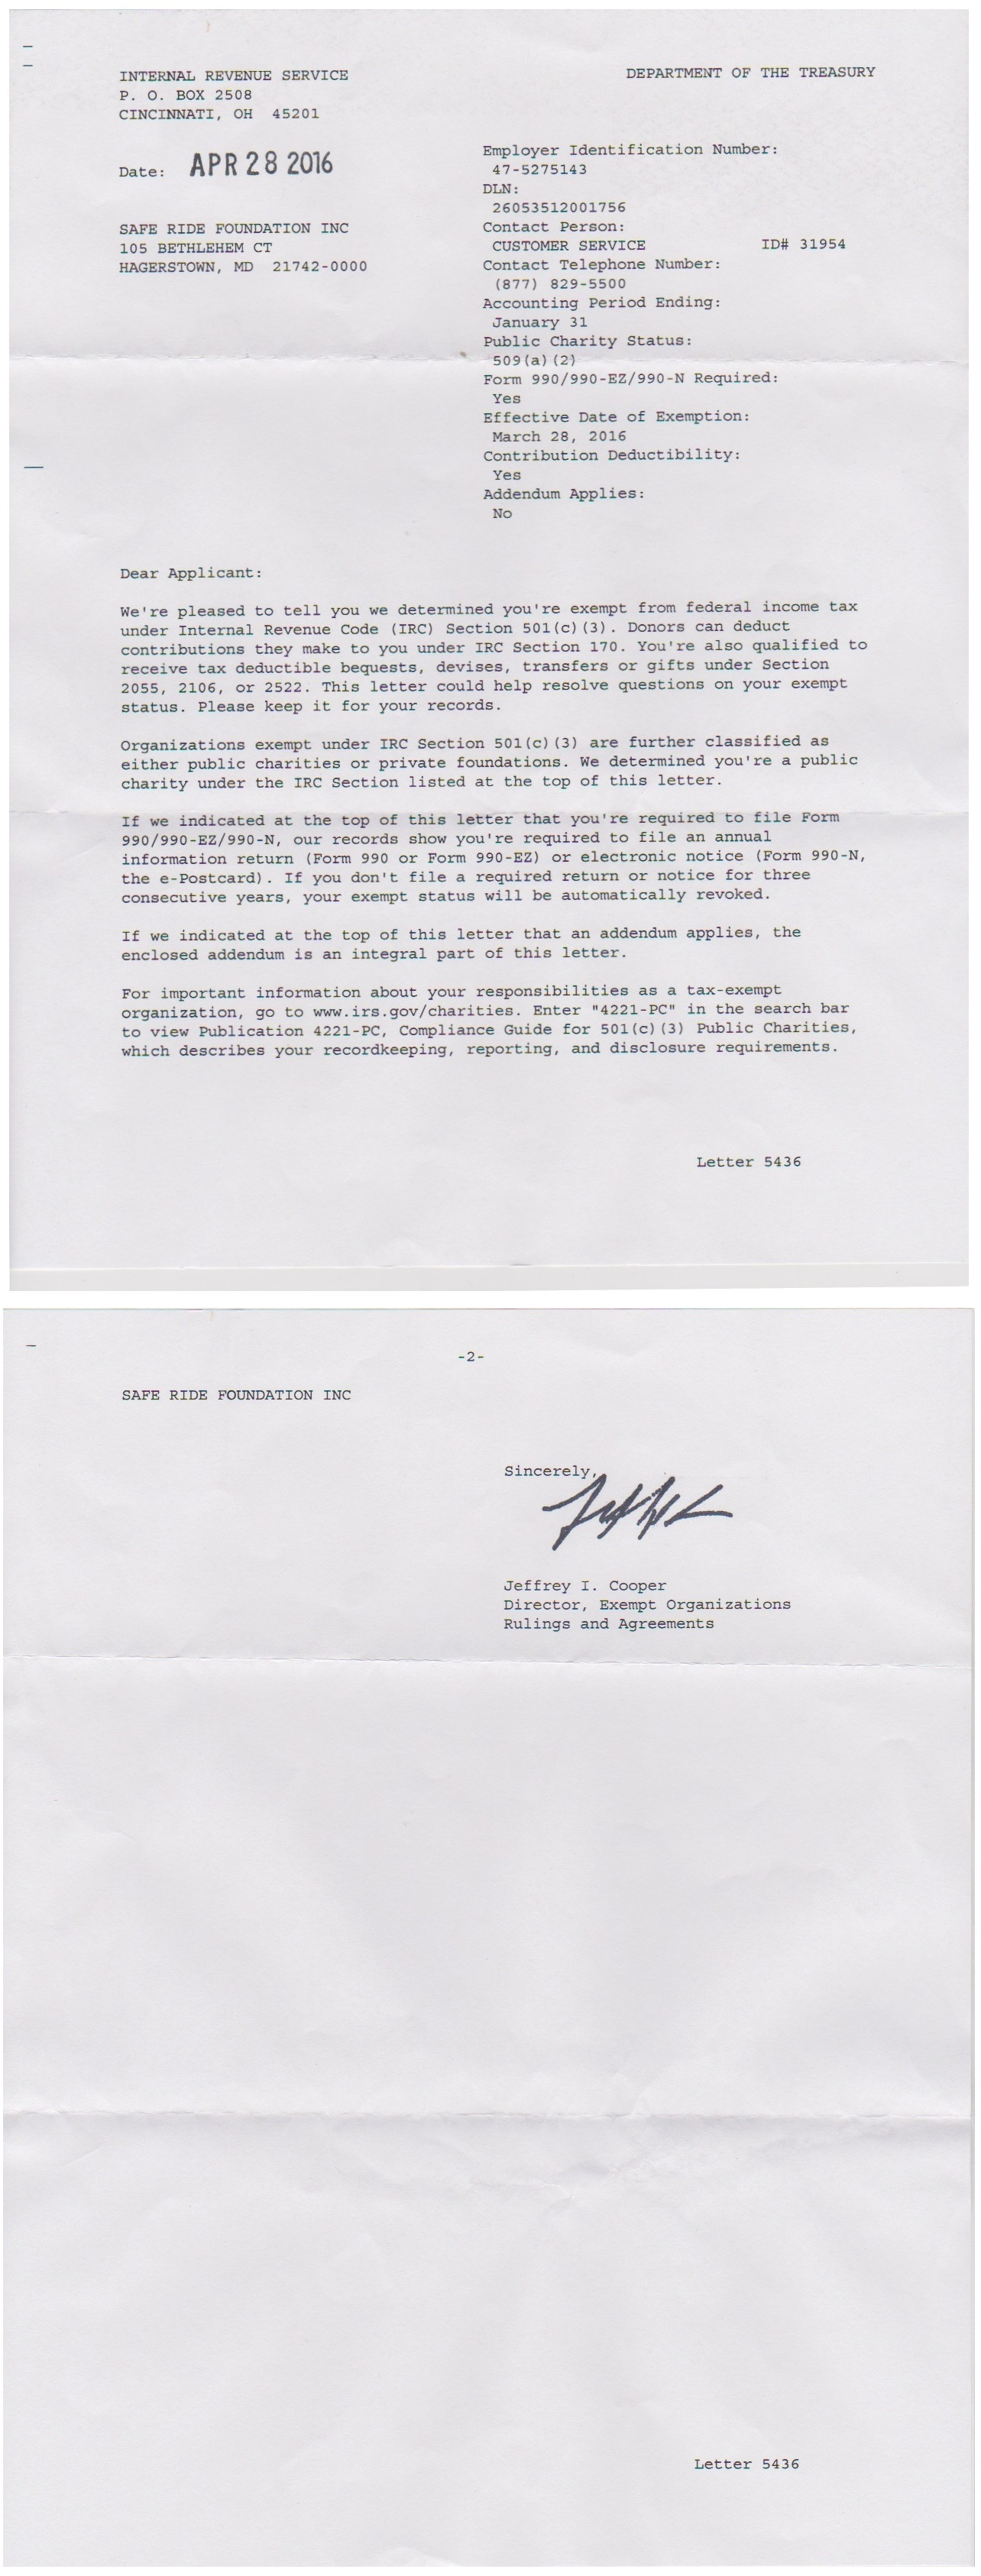 irs determination letter lovely irs determination letter cover letter examples 3975